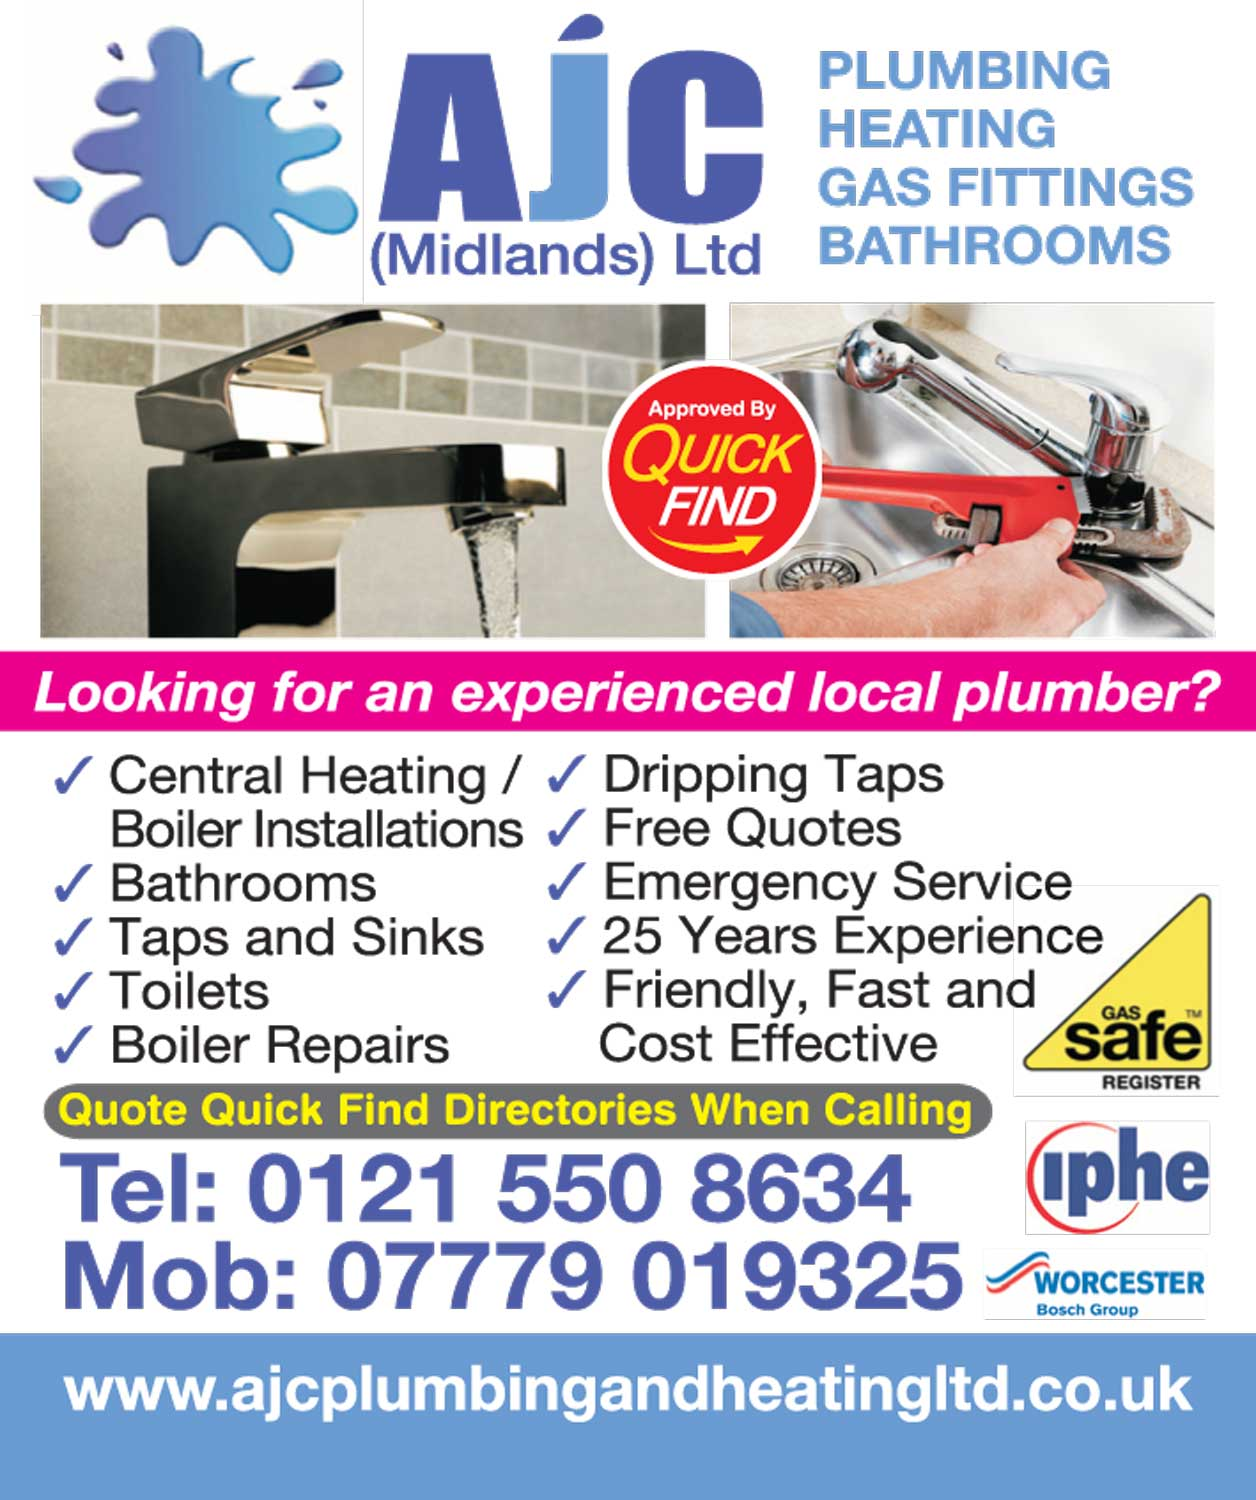 AJC Midlands Ltd